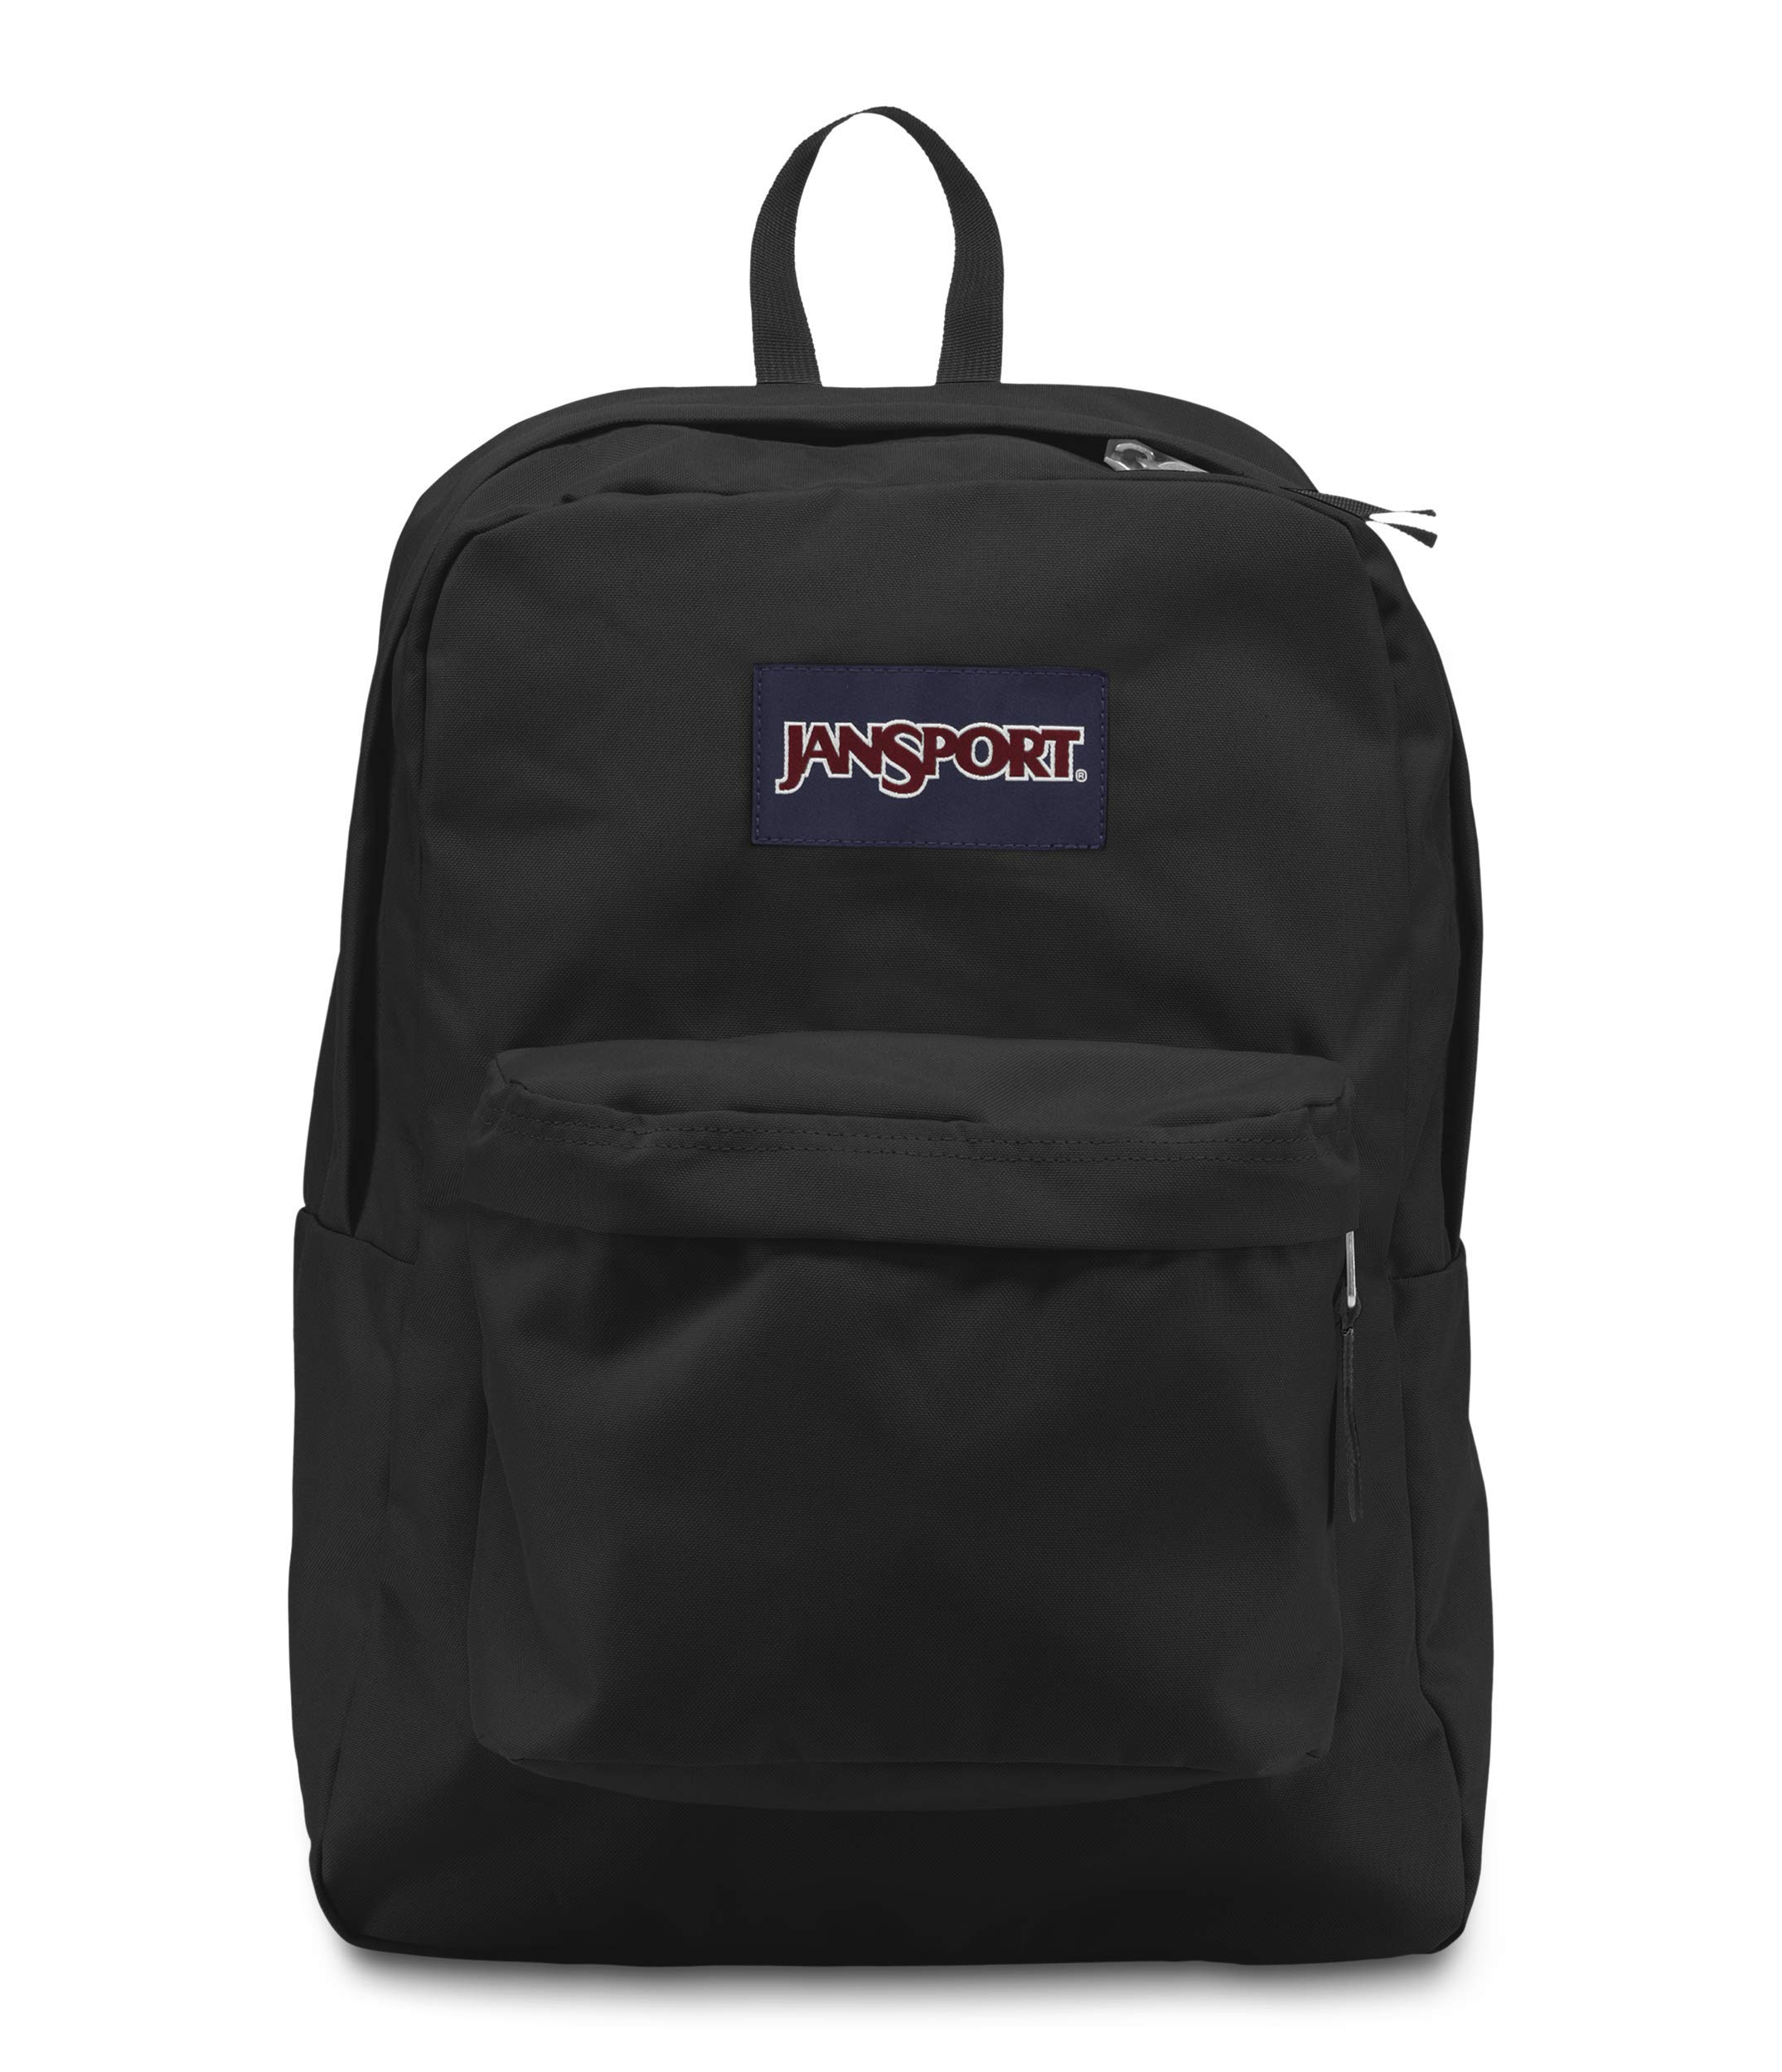 JanSport Superbreak Backpack - Lightweight School Pack, Black by JanSport